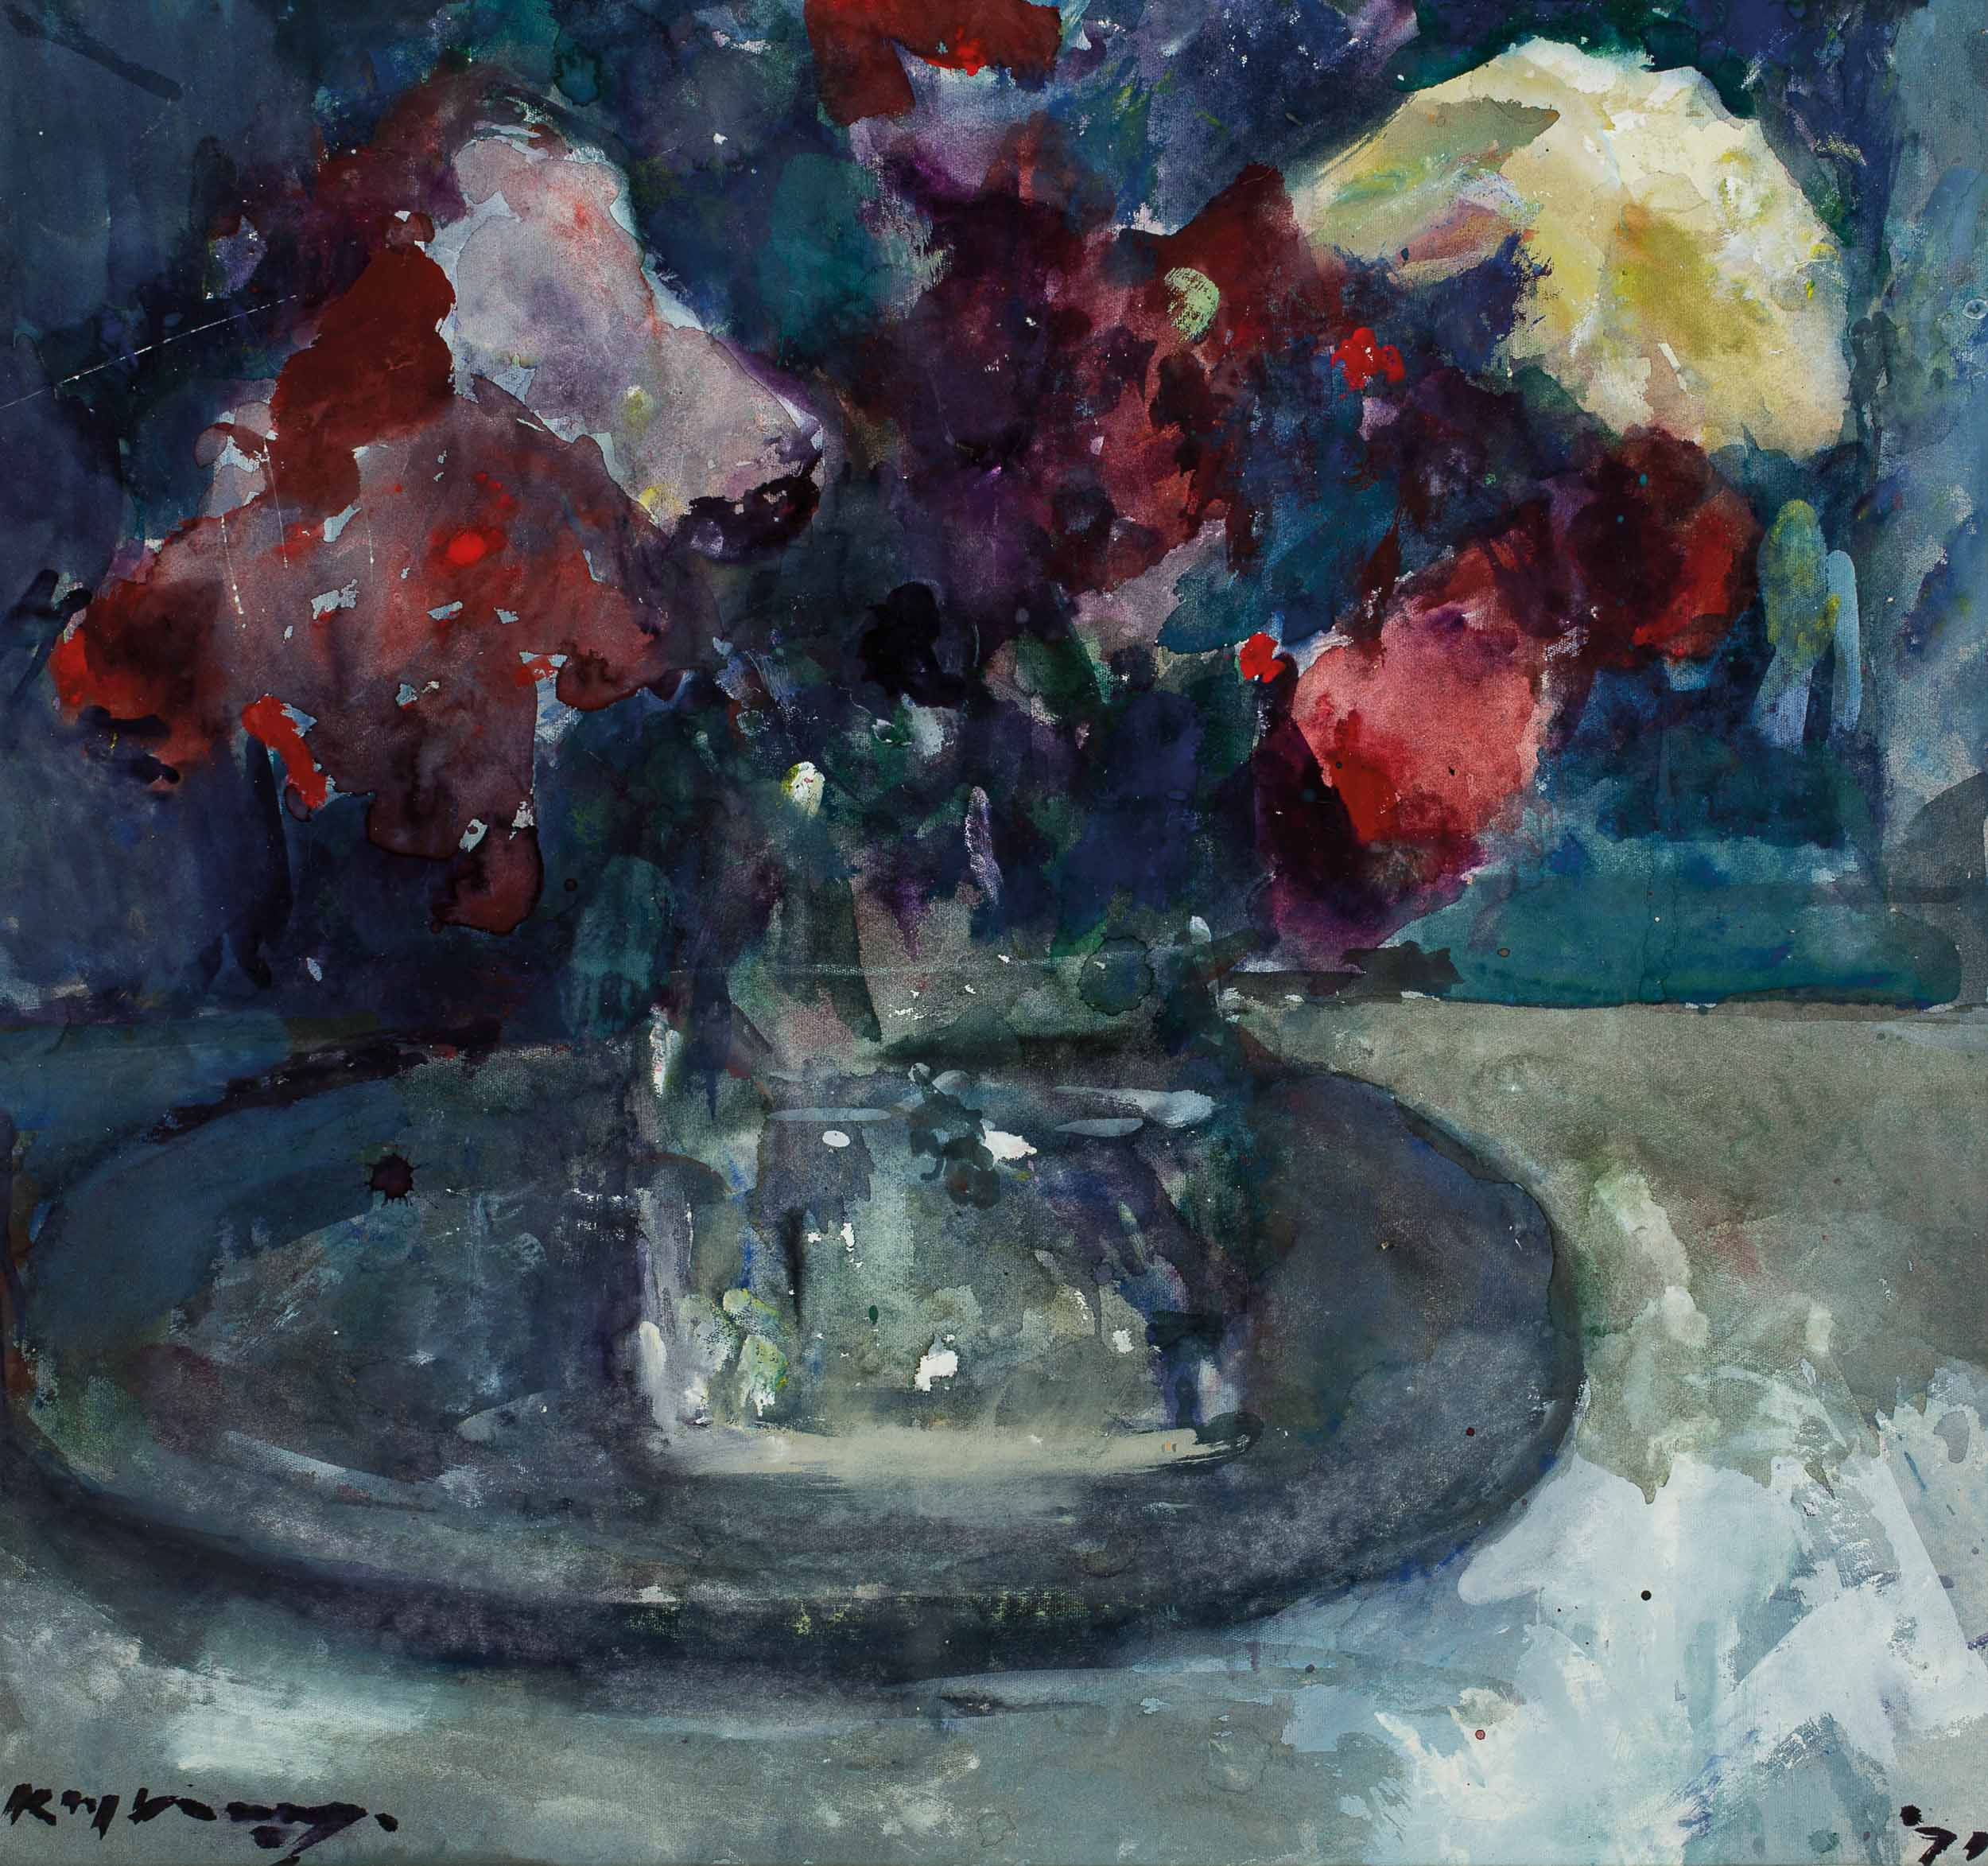 Bouquet in Glas op Tinnen Bord (Bouquet in Glass on Tin Plate)